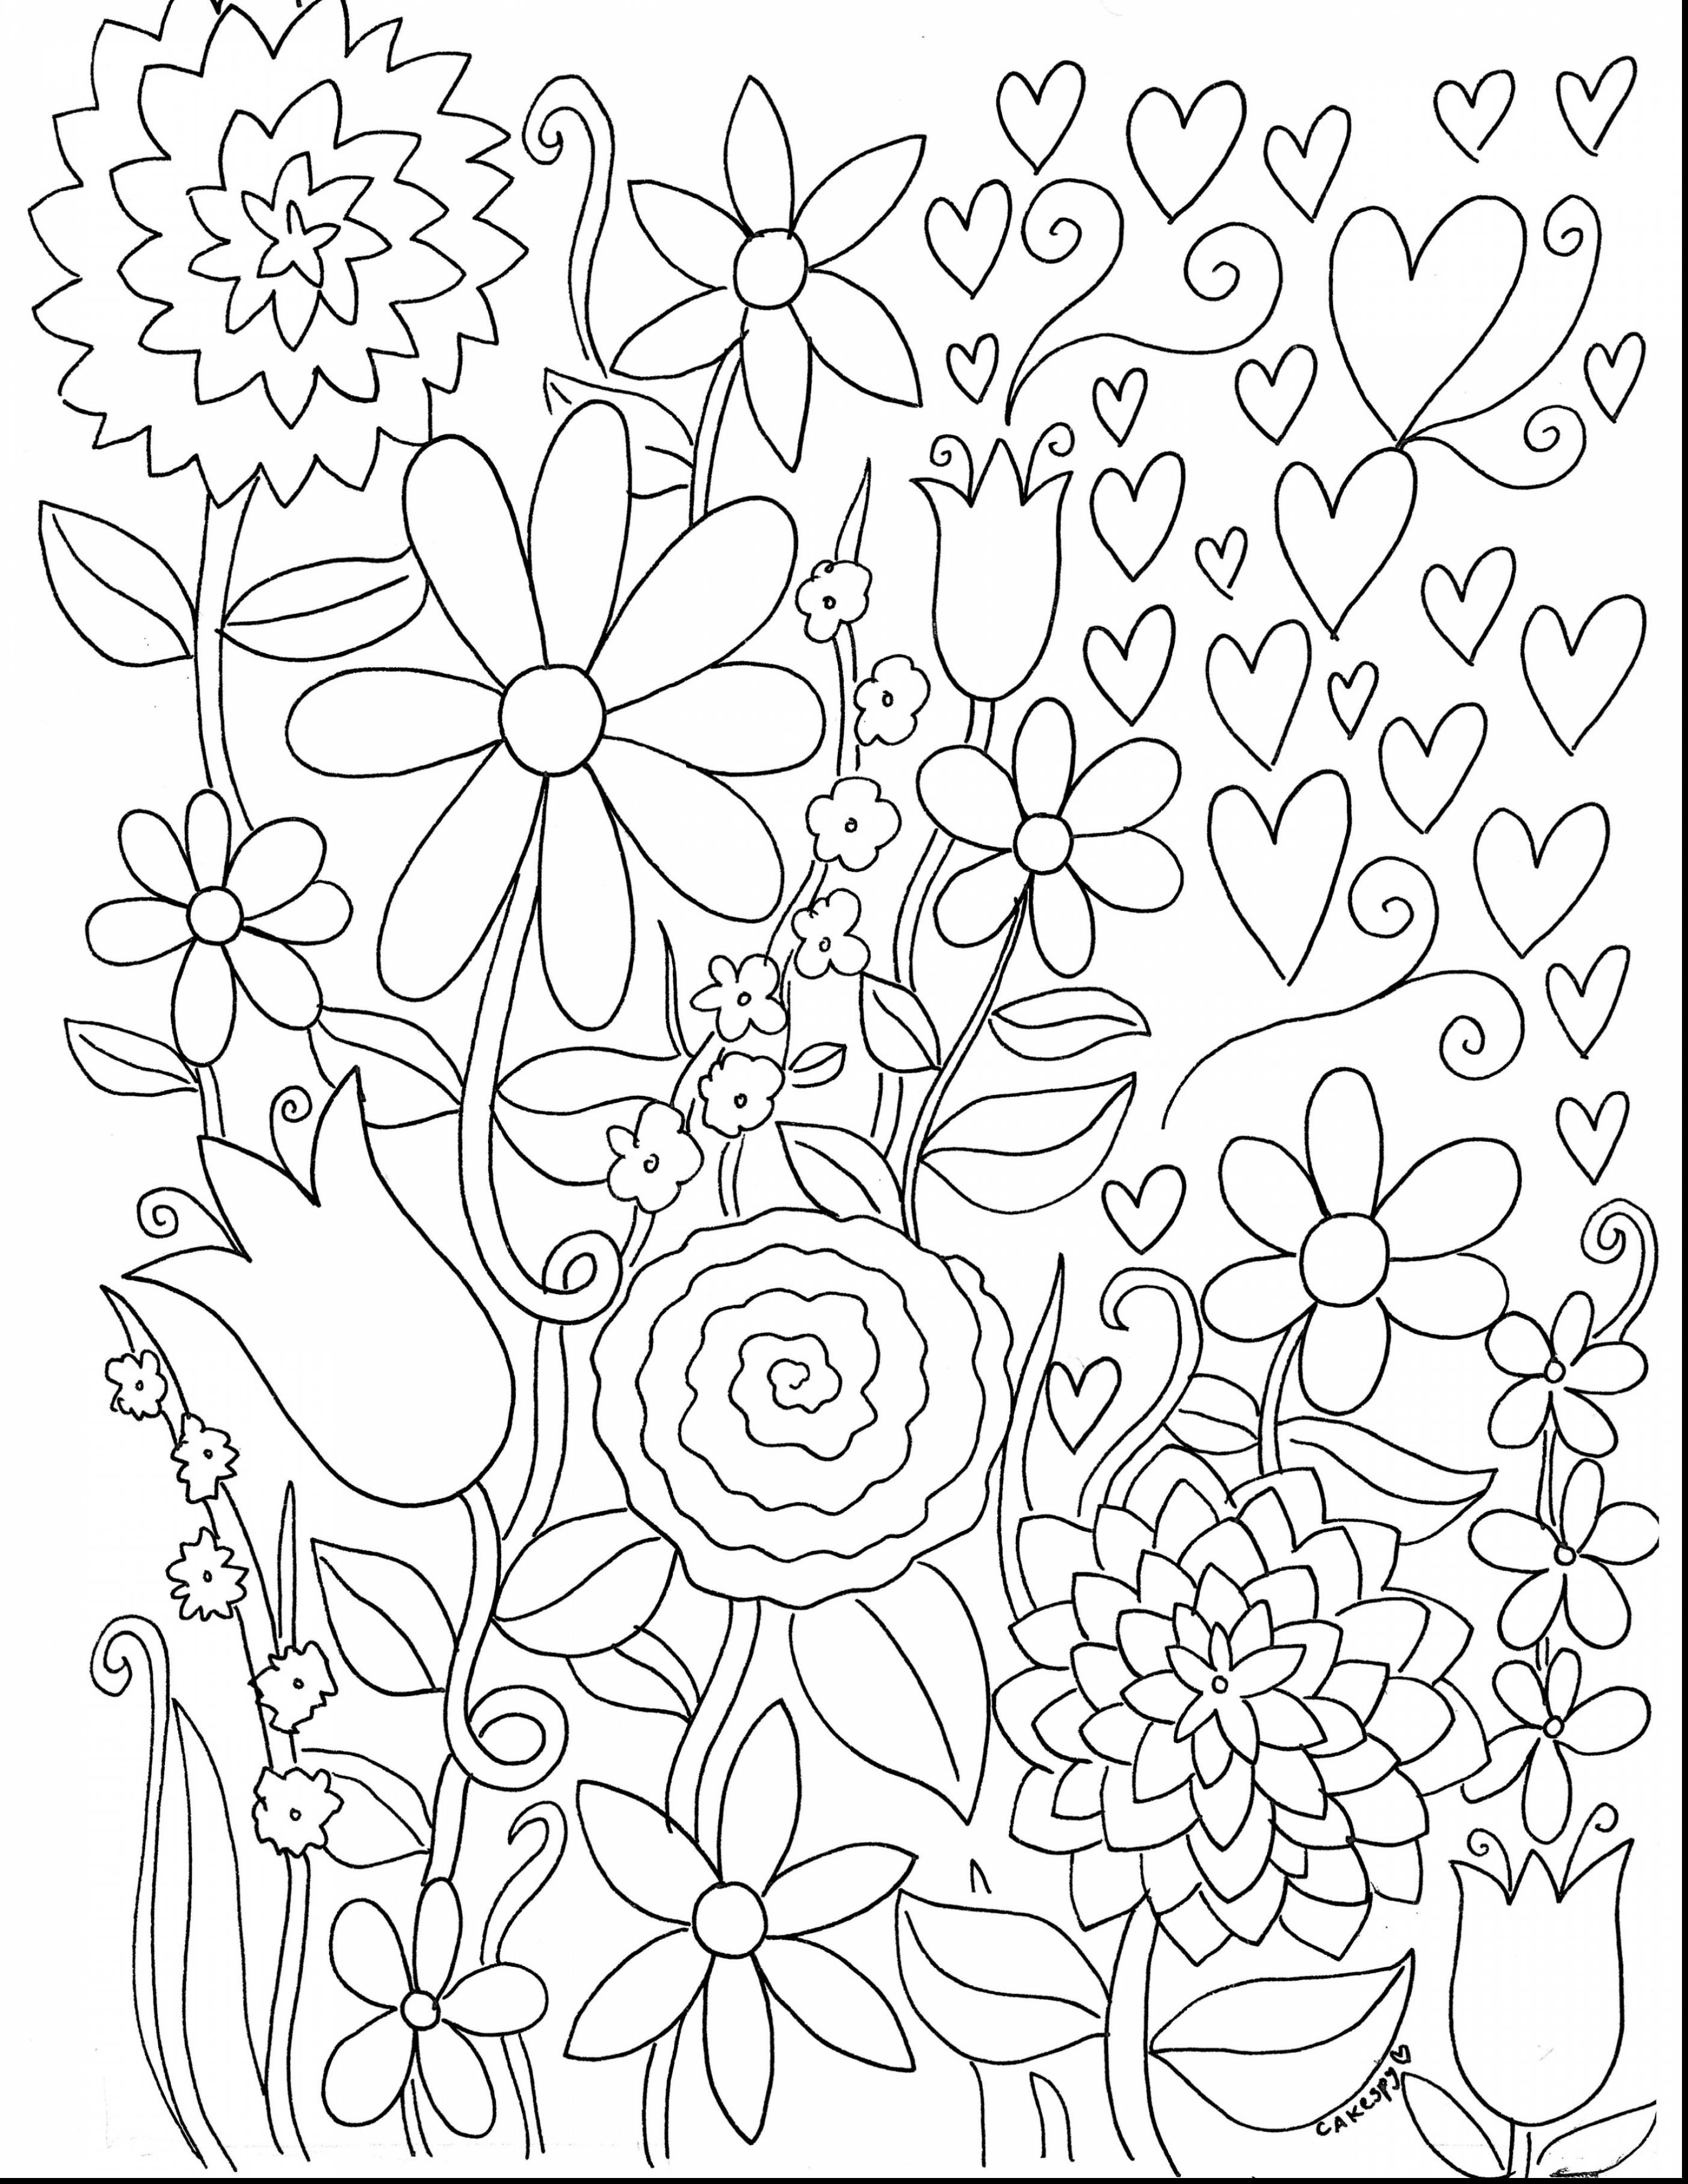 Create Coloring Pages Online at GetDrawings.com | Free for ...